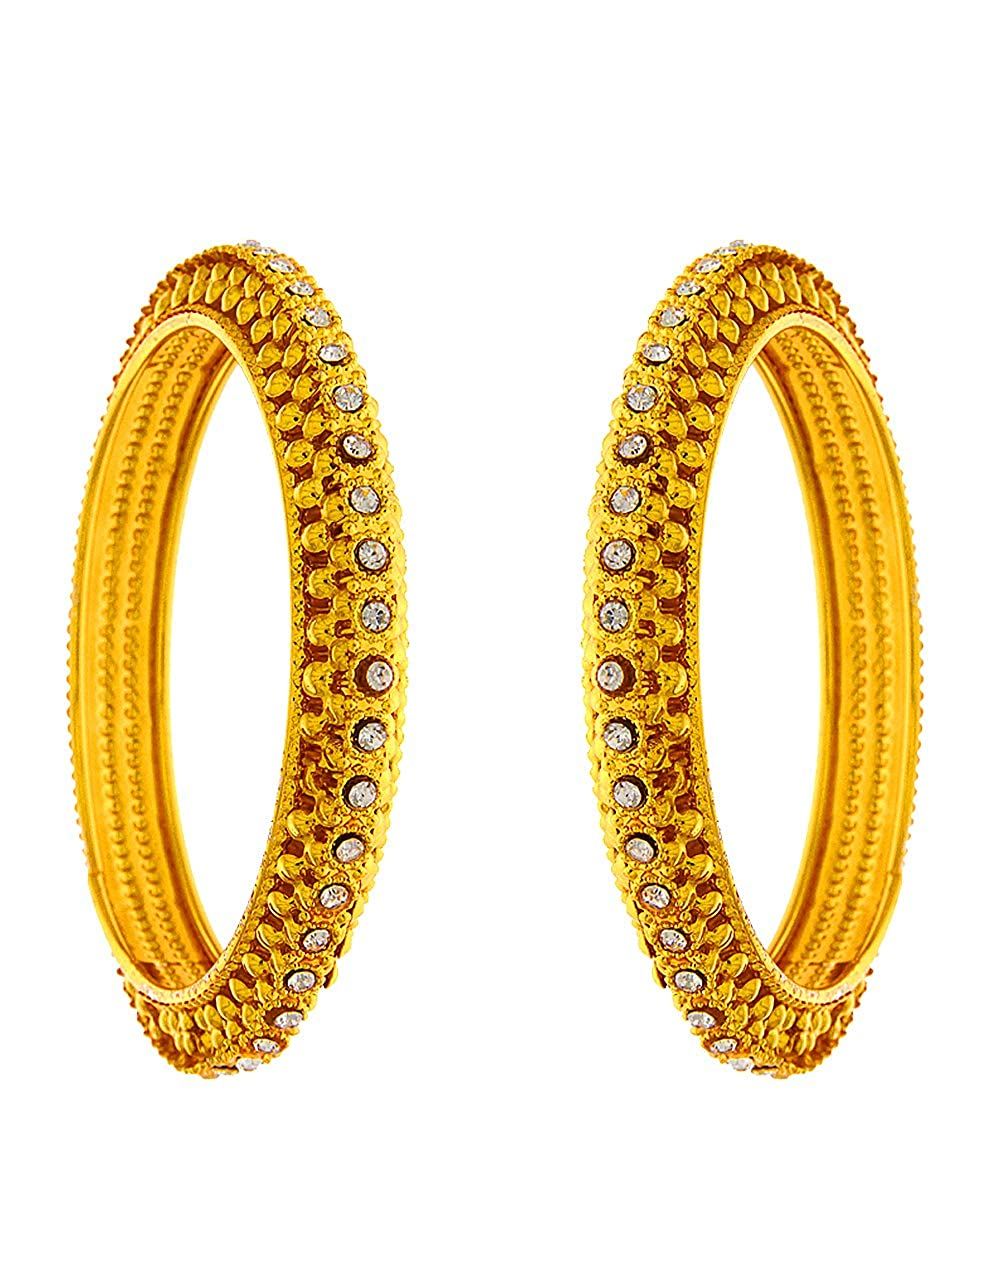 Anuradha Art Golden Colour Styled with Studded Sparkling Stone Traditional Bangles Set for Women//Girls